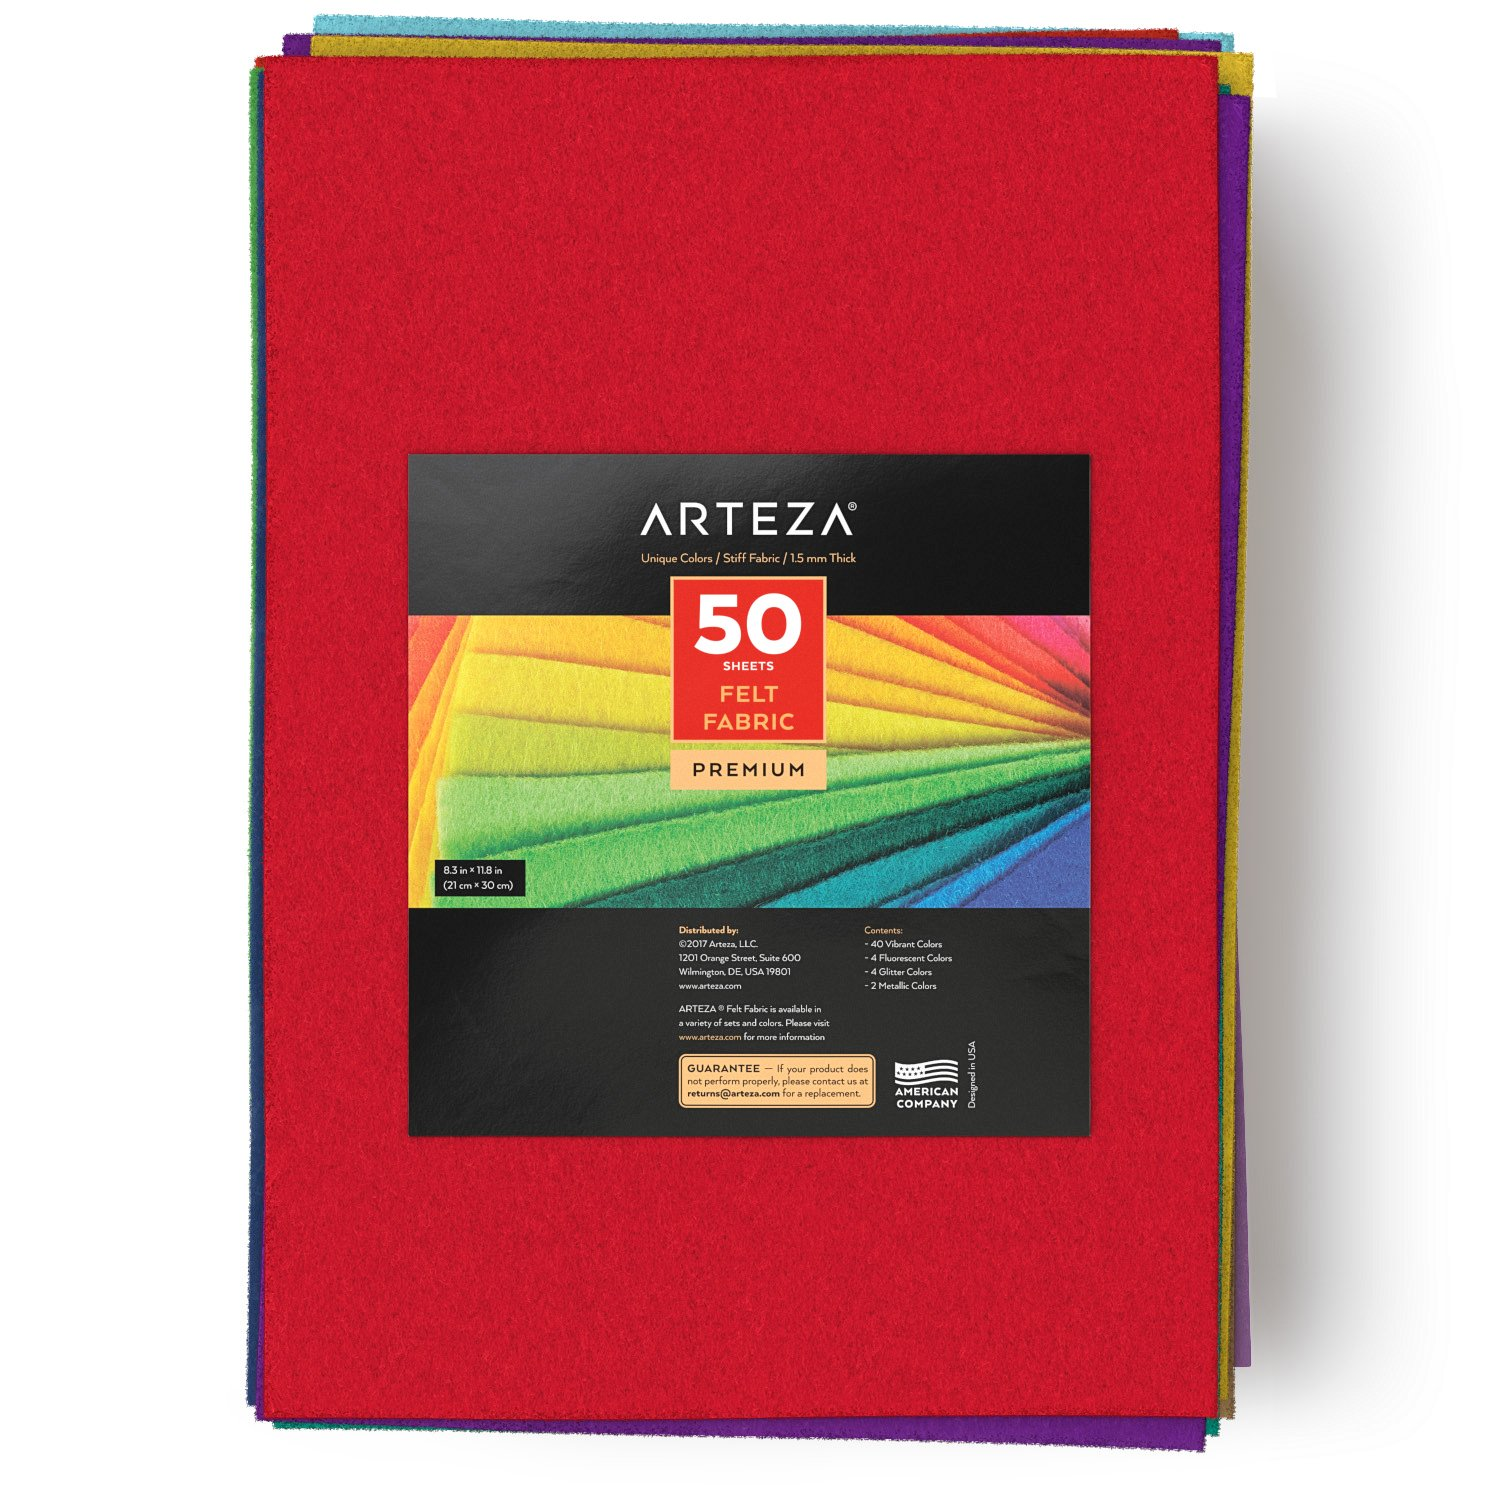 ARTEZA 50 Assorted Stiff Felt Fabric Sheets, 8.3''x11.8'' Squares, 1.5mm Thick for DIY Crafts, Sewing, Crafting Projects by ARTEZA (Image #4)